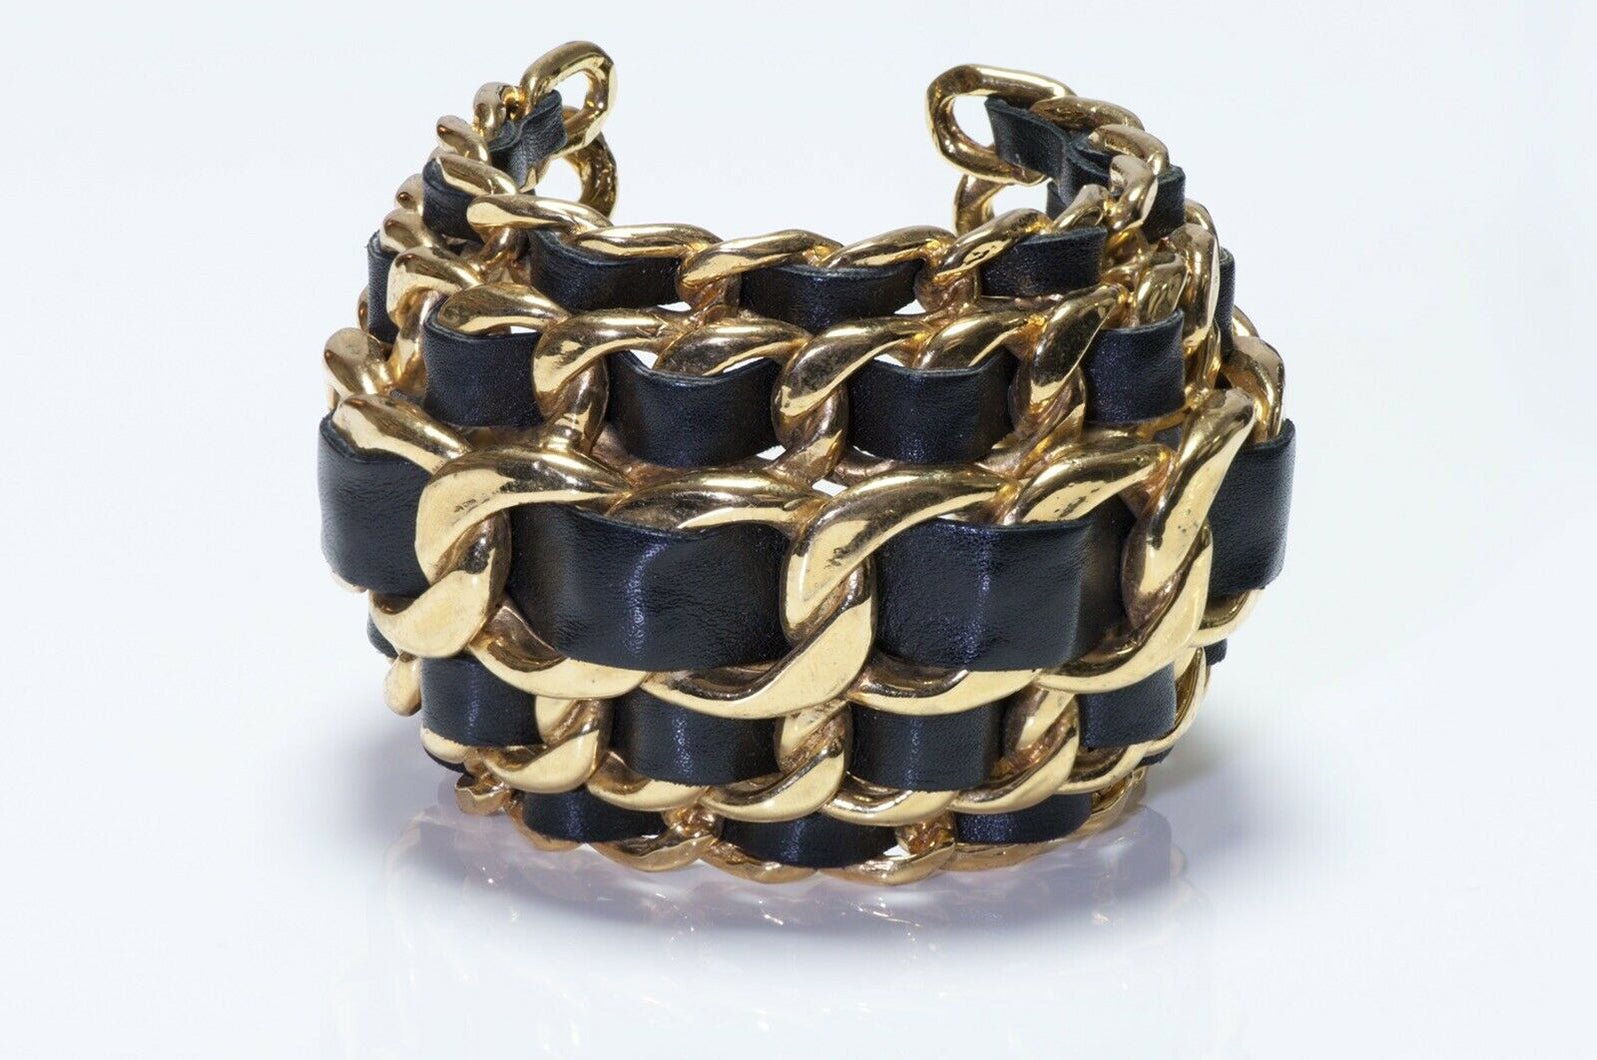 chanel-1990-s-wide-gold-plated-5-row-chain-black-leather-cuff-bracelet